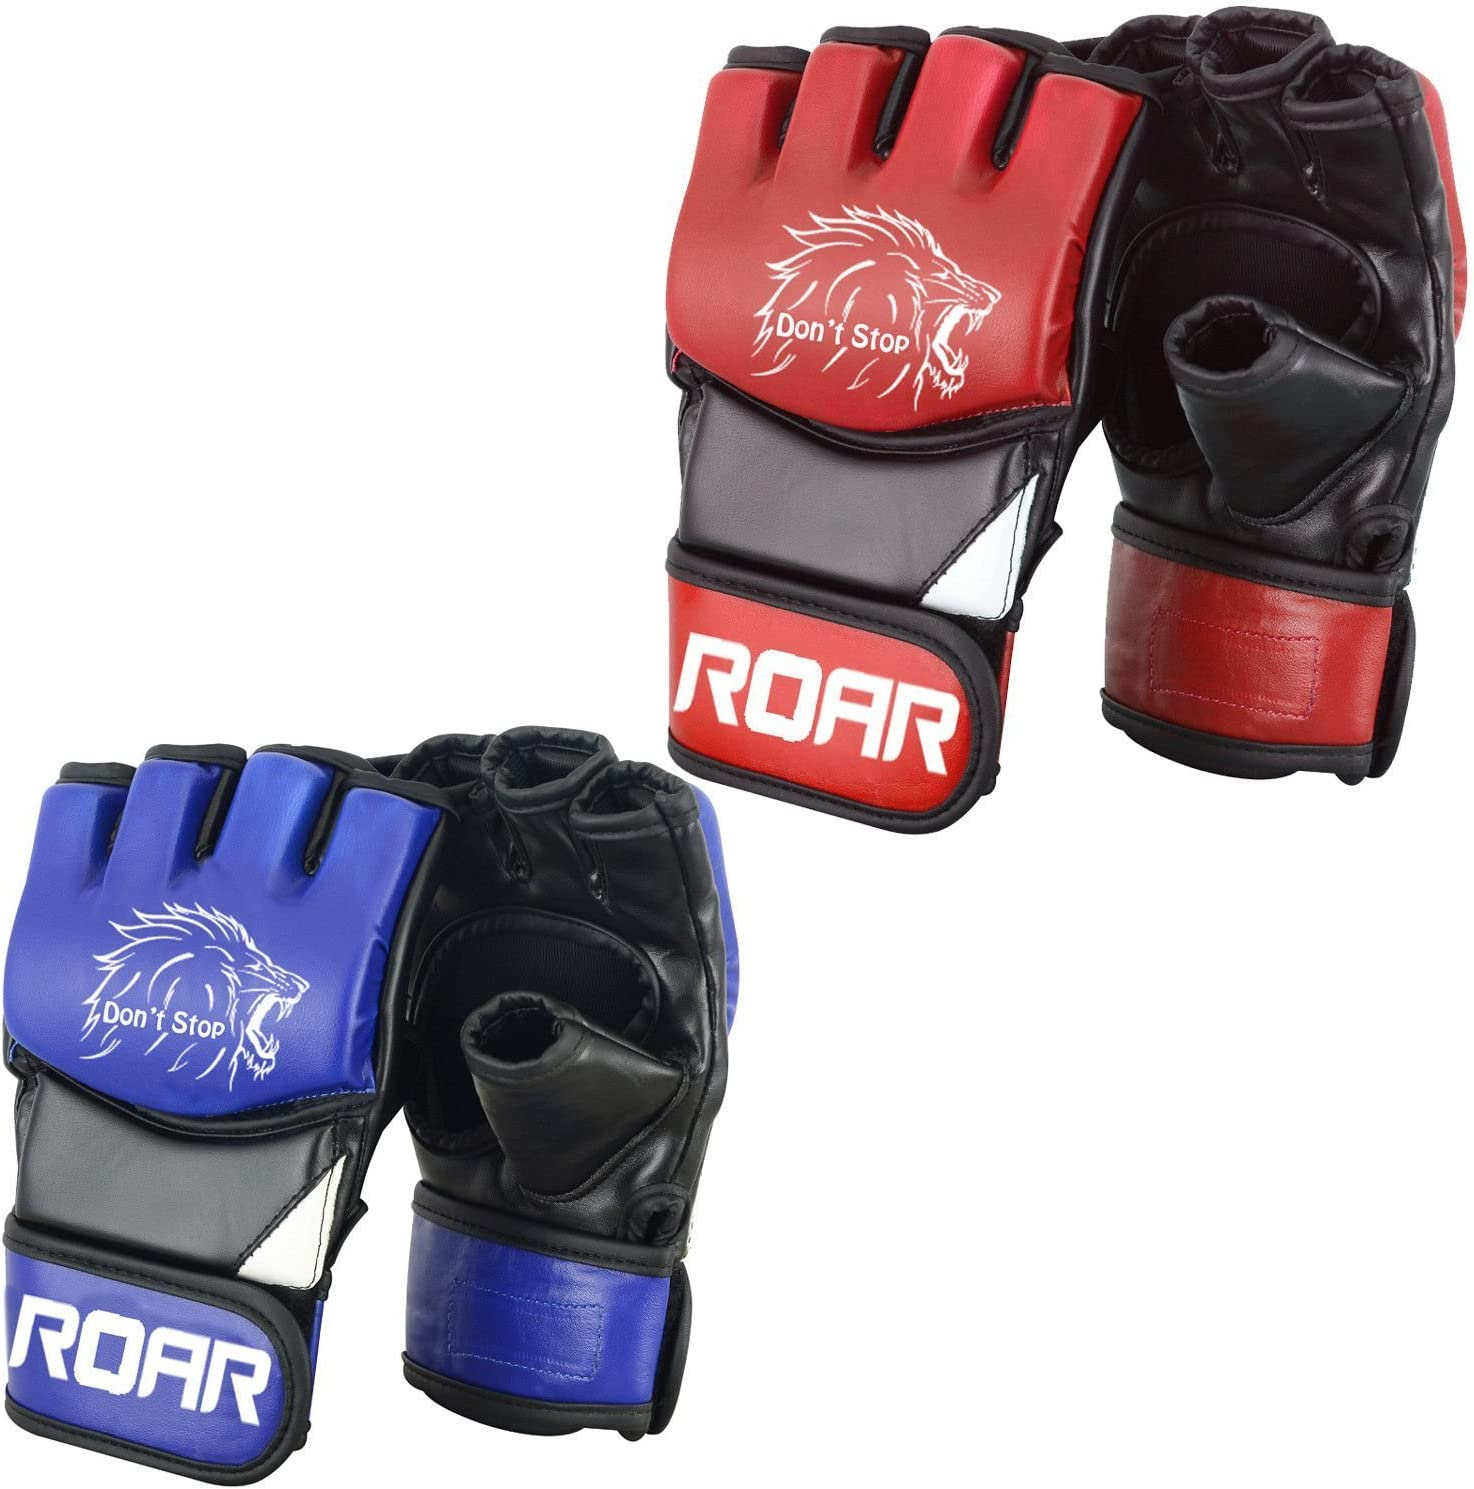 Roar MMA Grappling Easy-to-use Gloves Training Cage Fight UFC Bag Punching G 4 years warranty